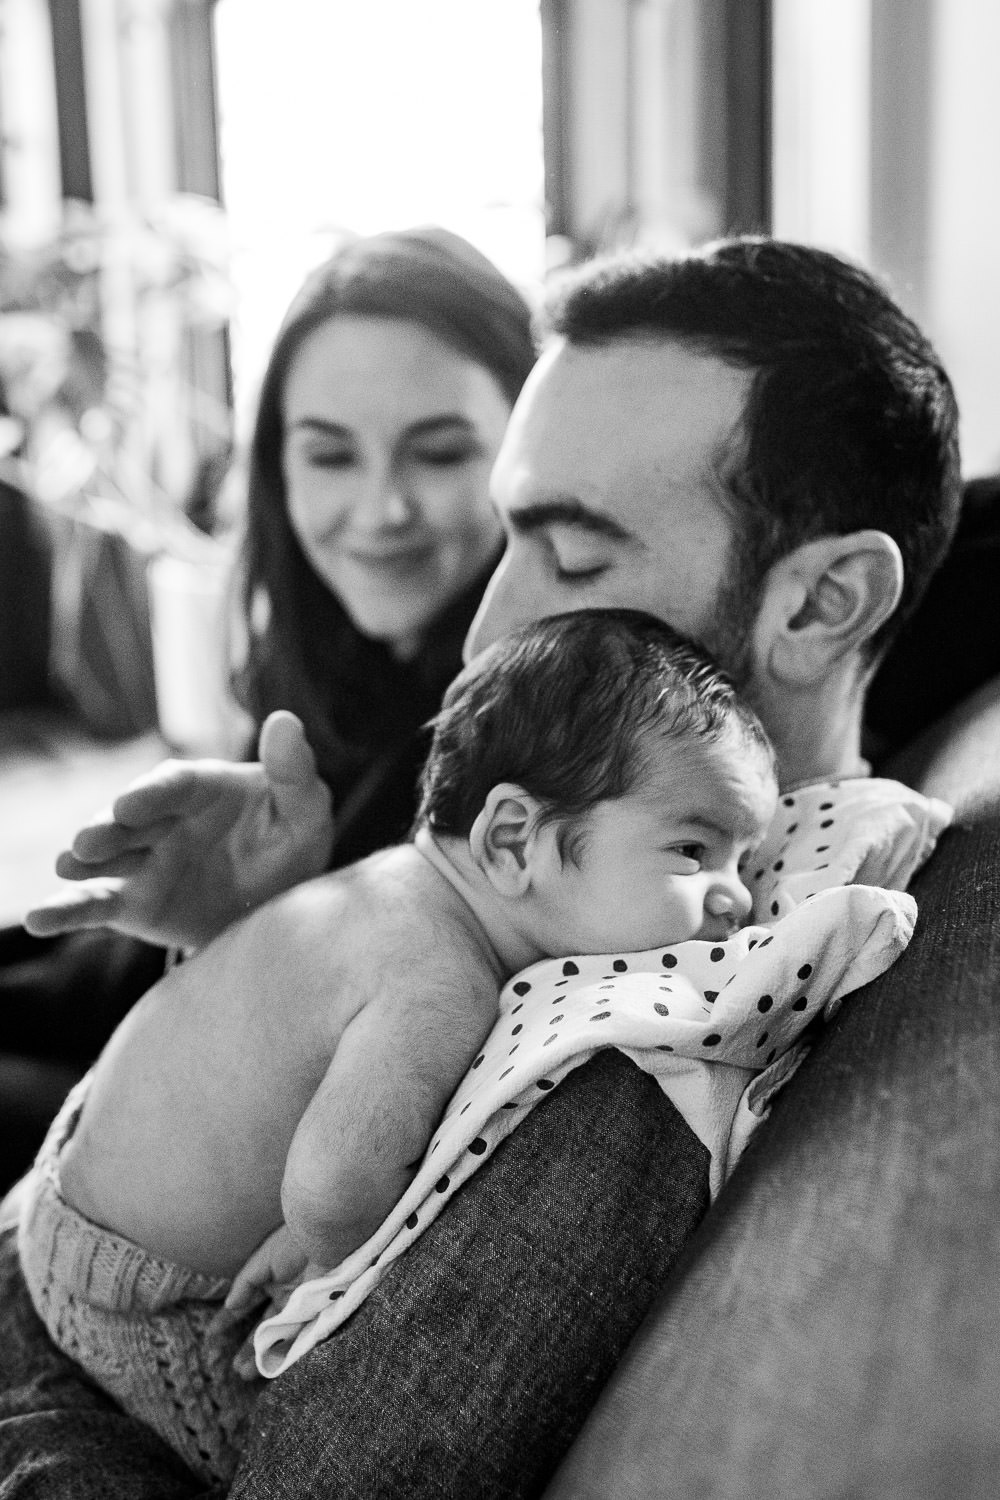 A baby rests on his father's shoulder.